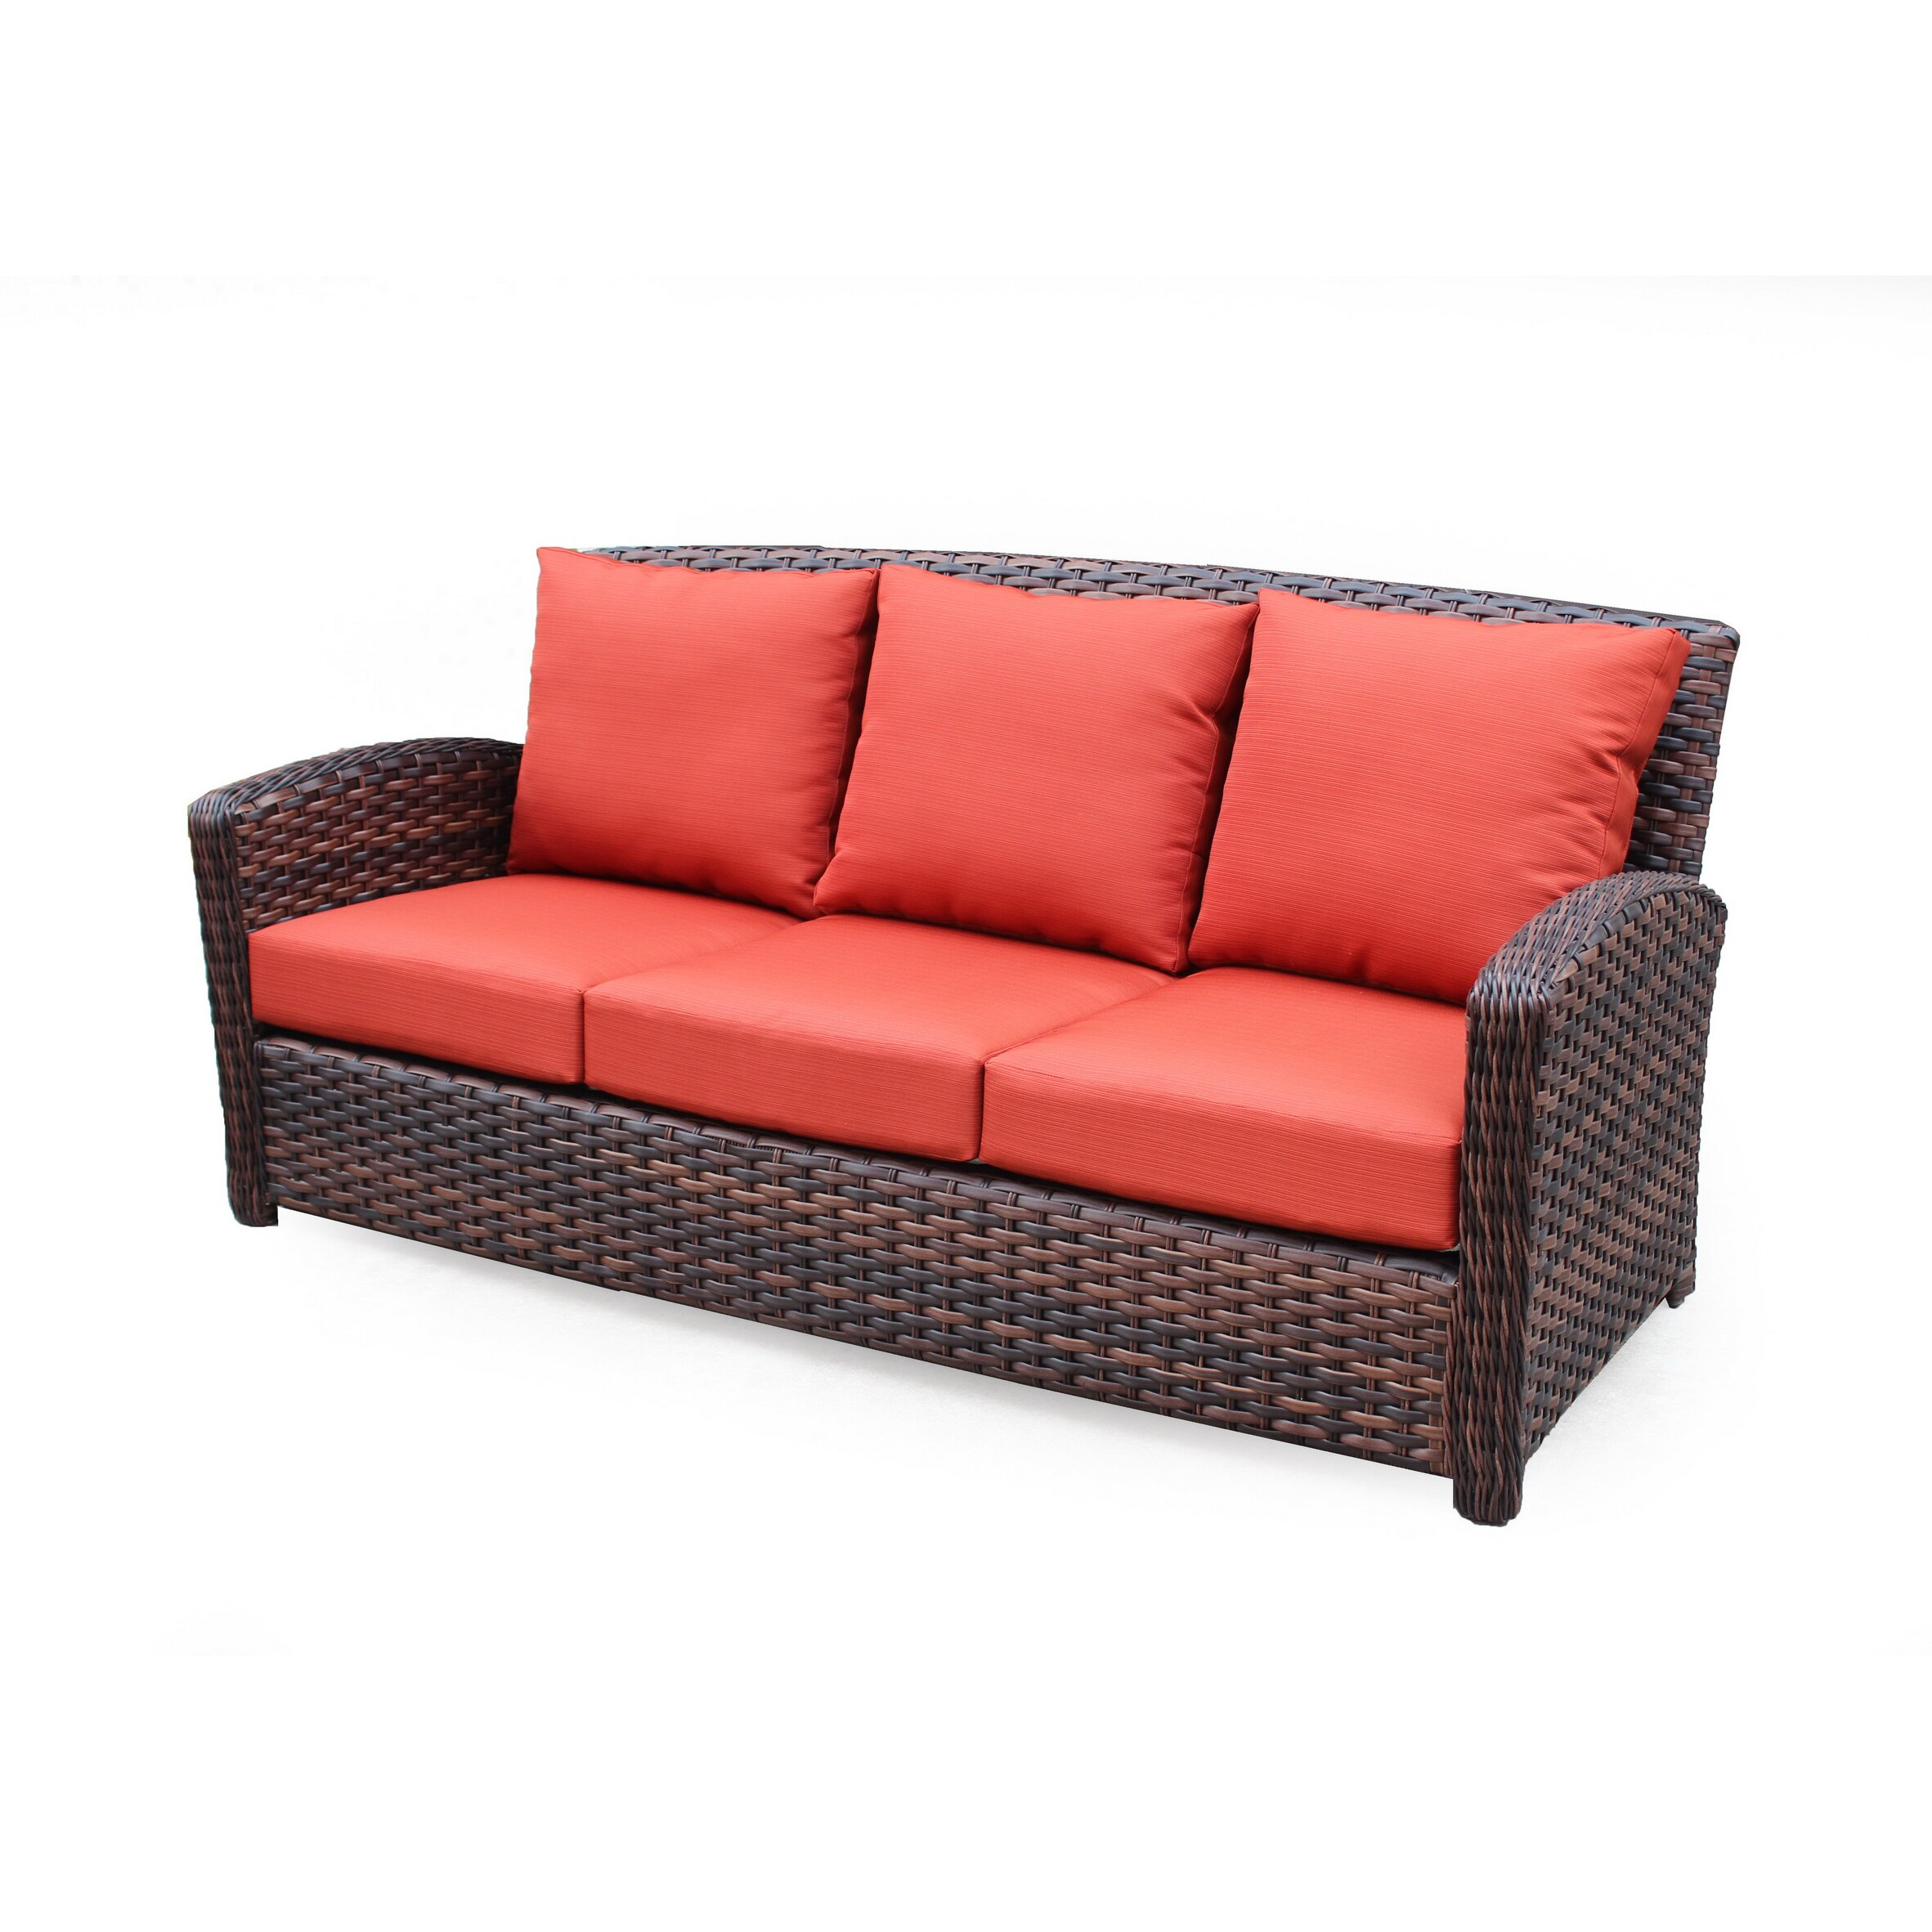 rattan sofa cushions outdoor wicker furniture cushions video and photos thesofa. Black Bedroom Furniture Sets. Home Design Ideas